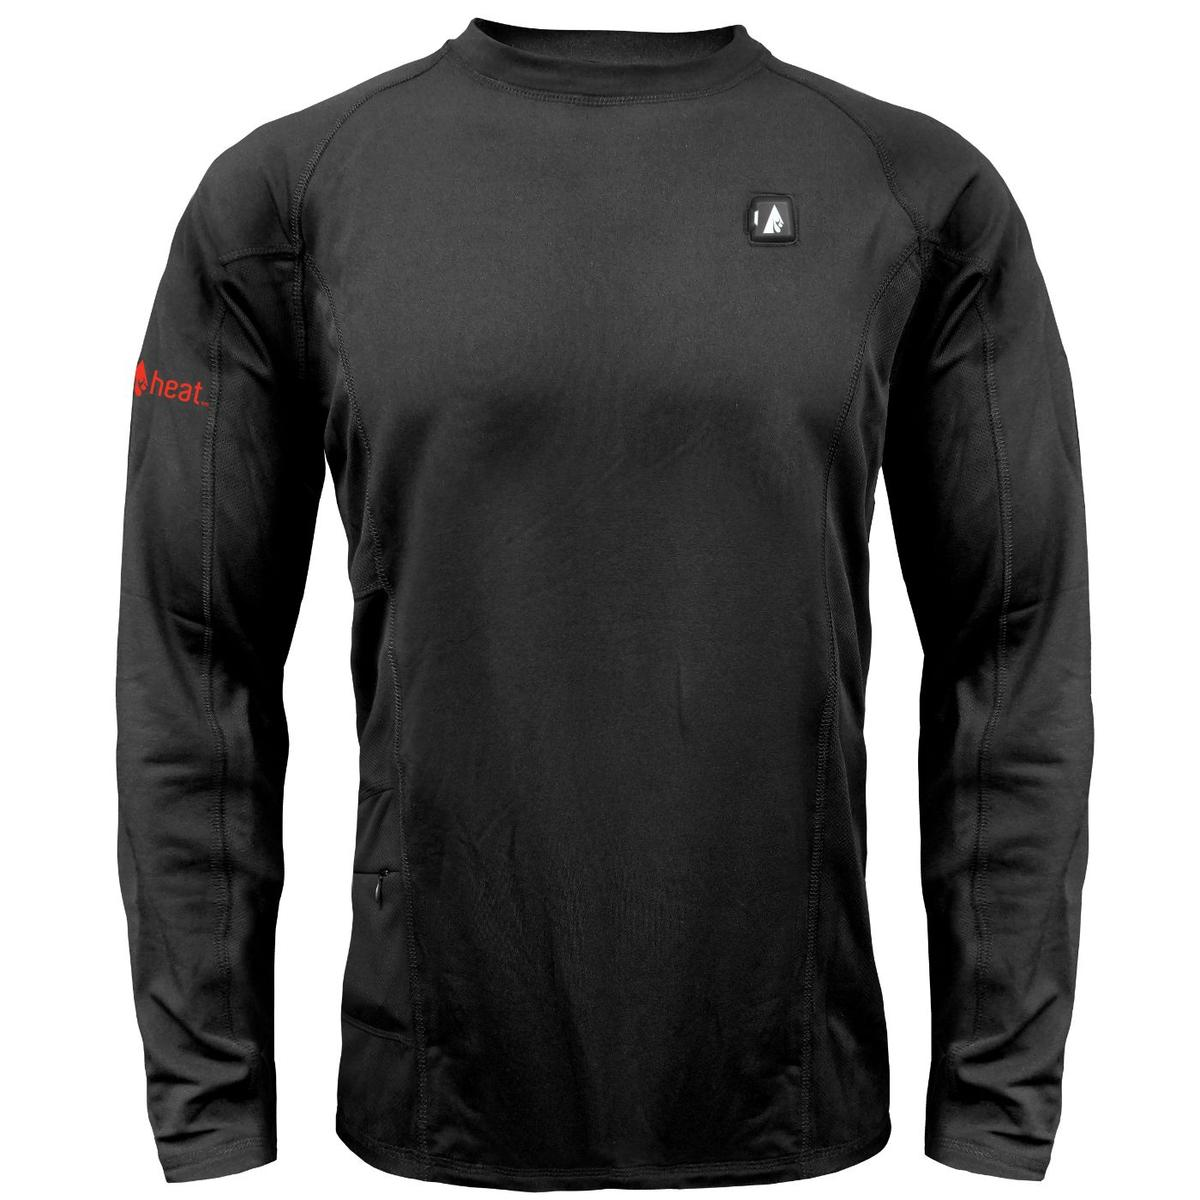 ActionHeat 5V Heated Base Layer Shirt - Men's - Heated